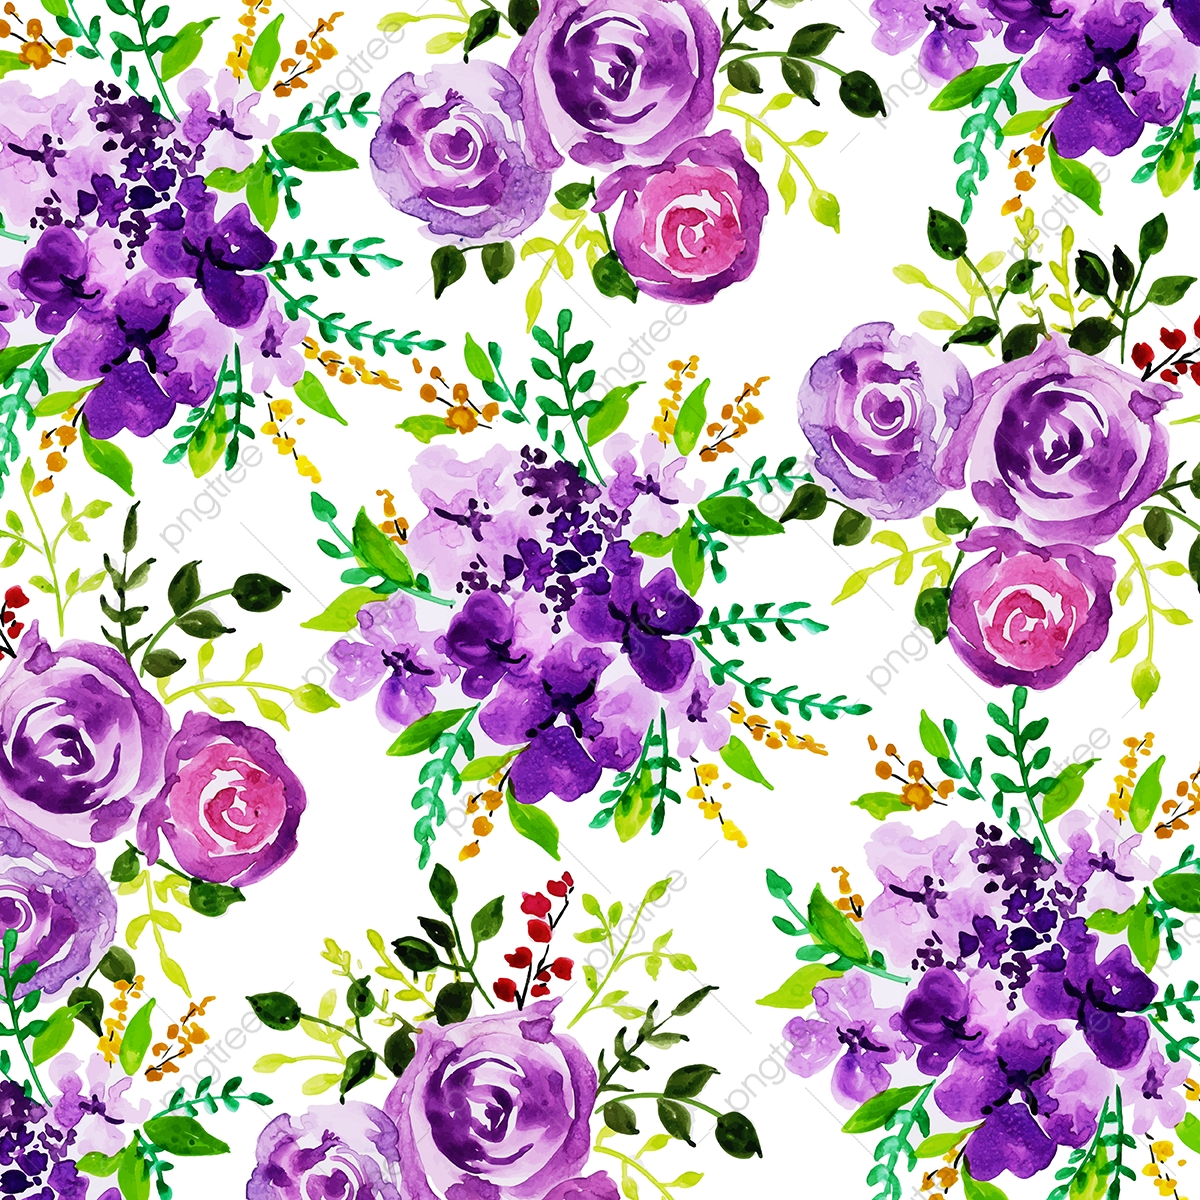 Beautiful Watercolor Irregular Floral Pattern Background